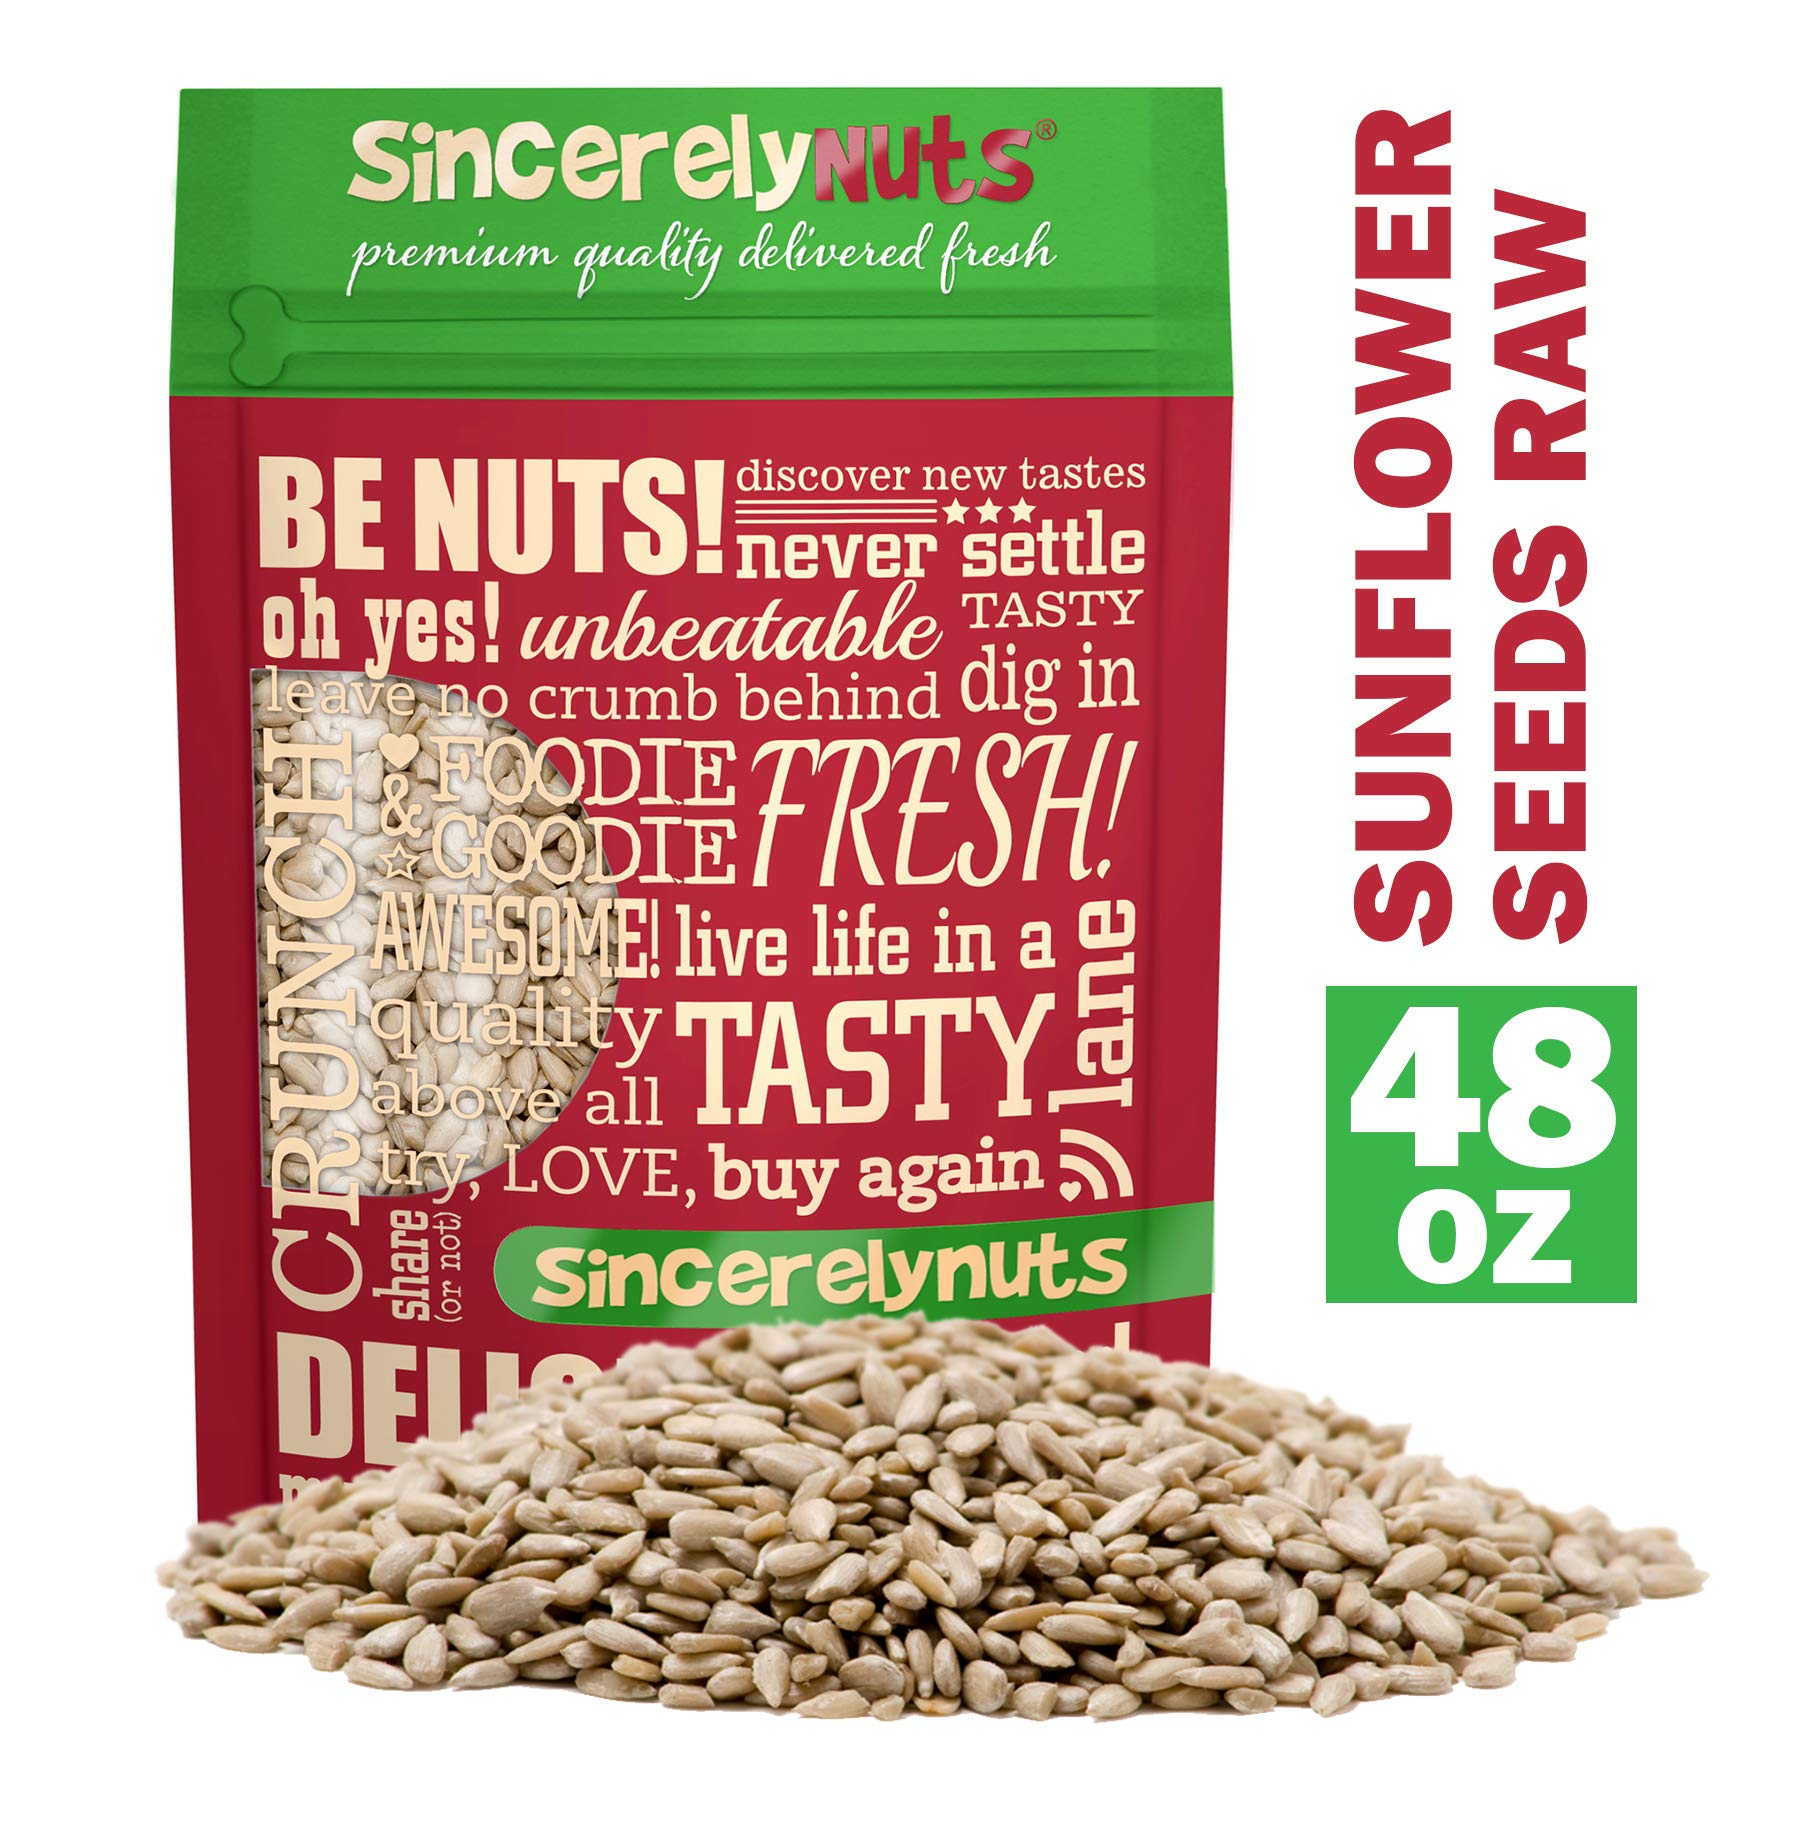 Sincerely Nuts Sunflower Seed Kernels Raw (No Shell) (3lb bag)   Delicious Antioxidant Rich Snack   Source of Protein, Fiber, Essential Vitamins & Minerals   Vegan and Gluten Free